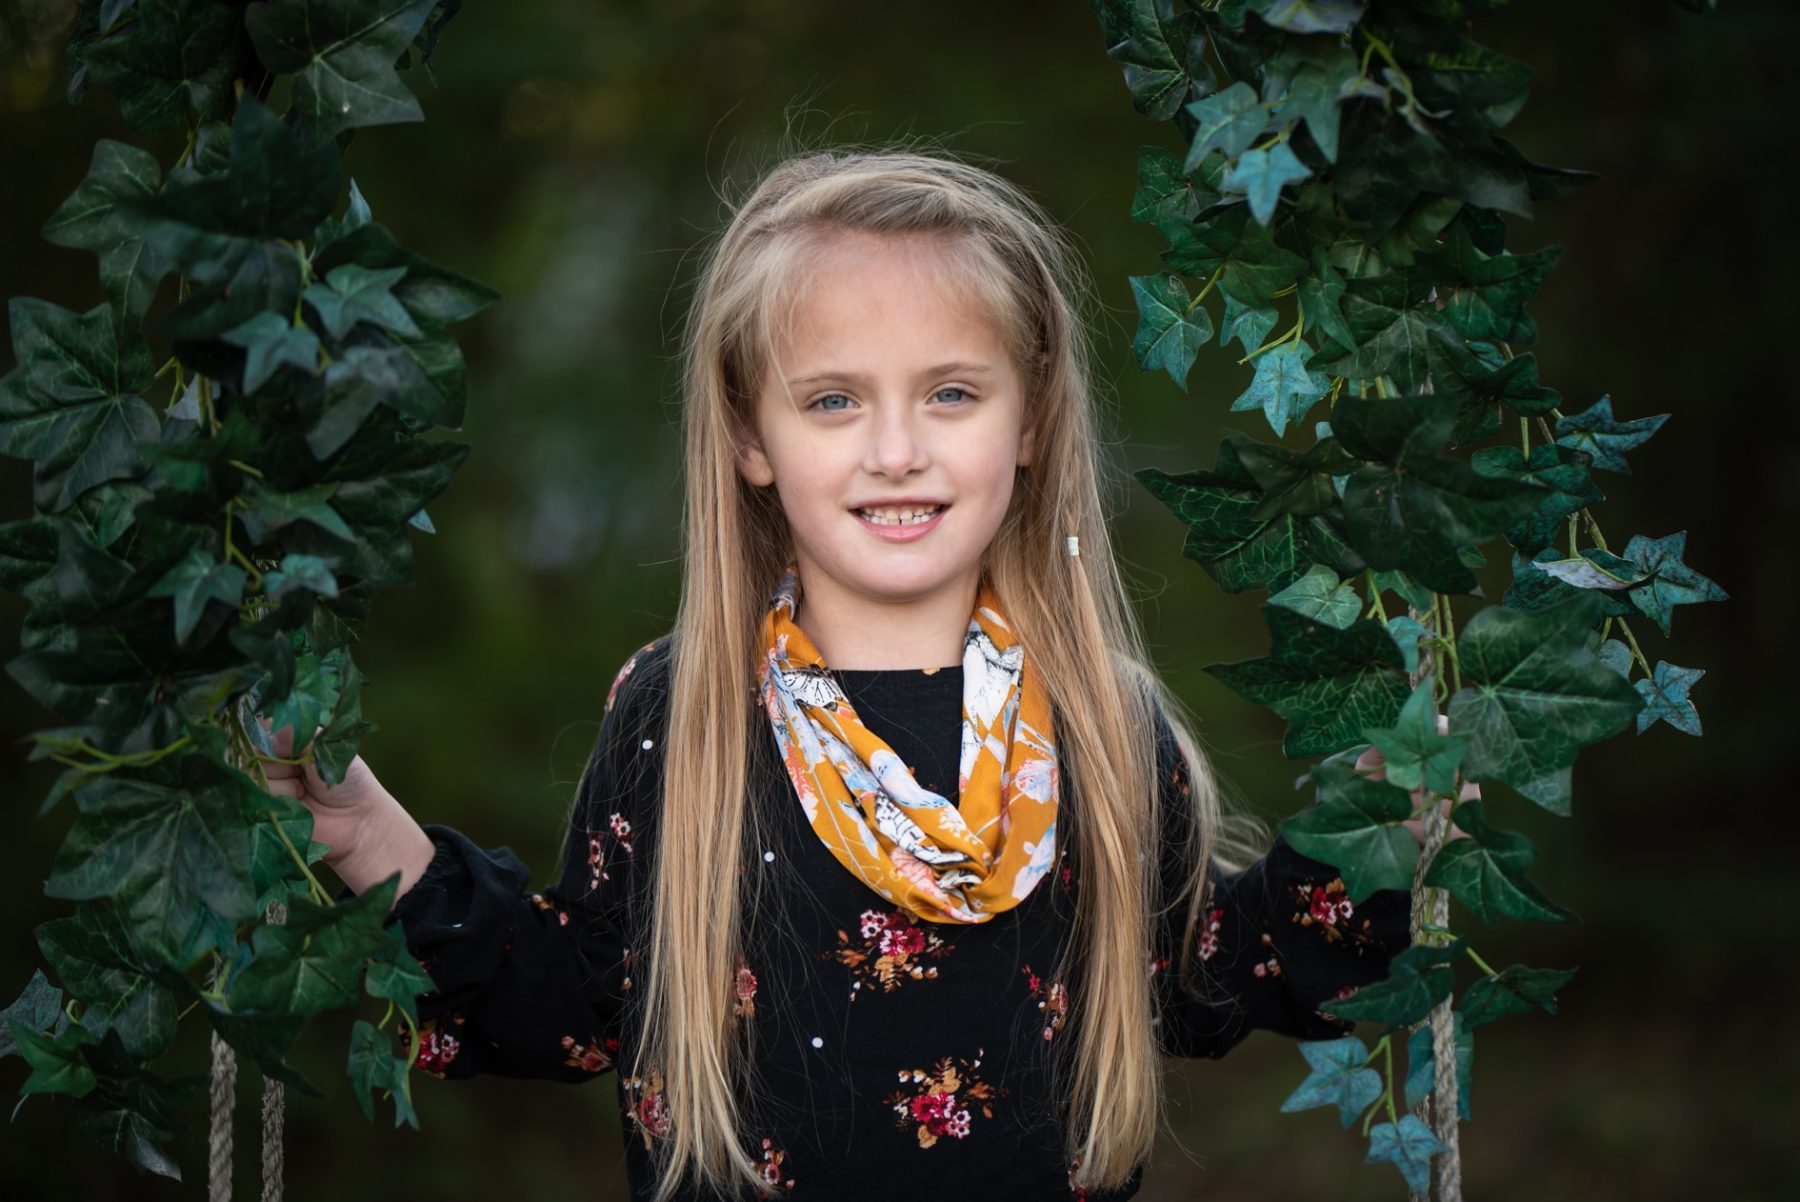 Children's Photo Session Ideas featured on Nashville Baby Guide